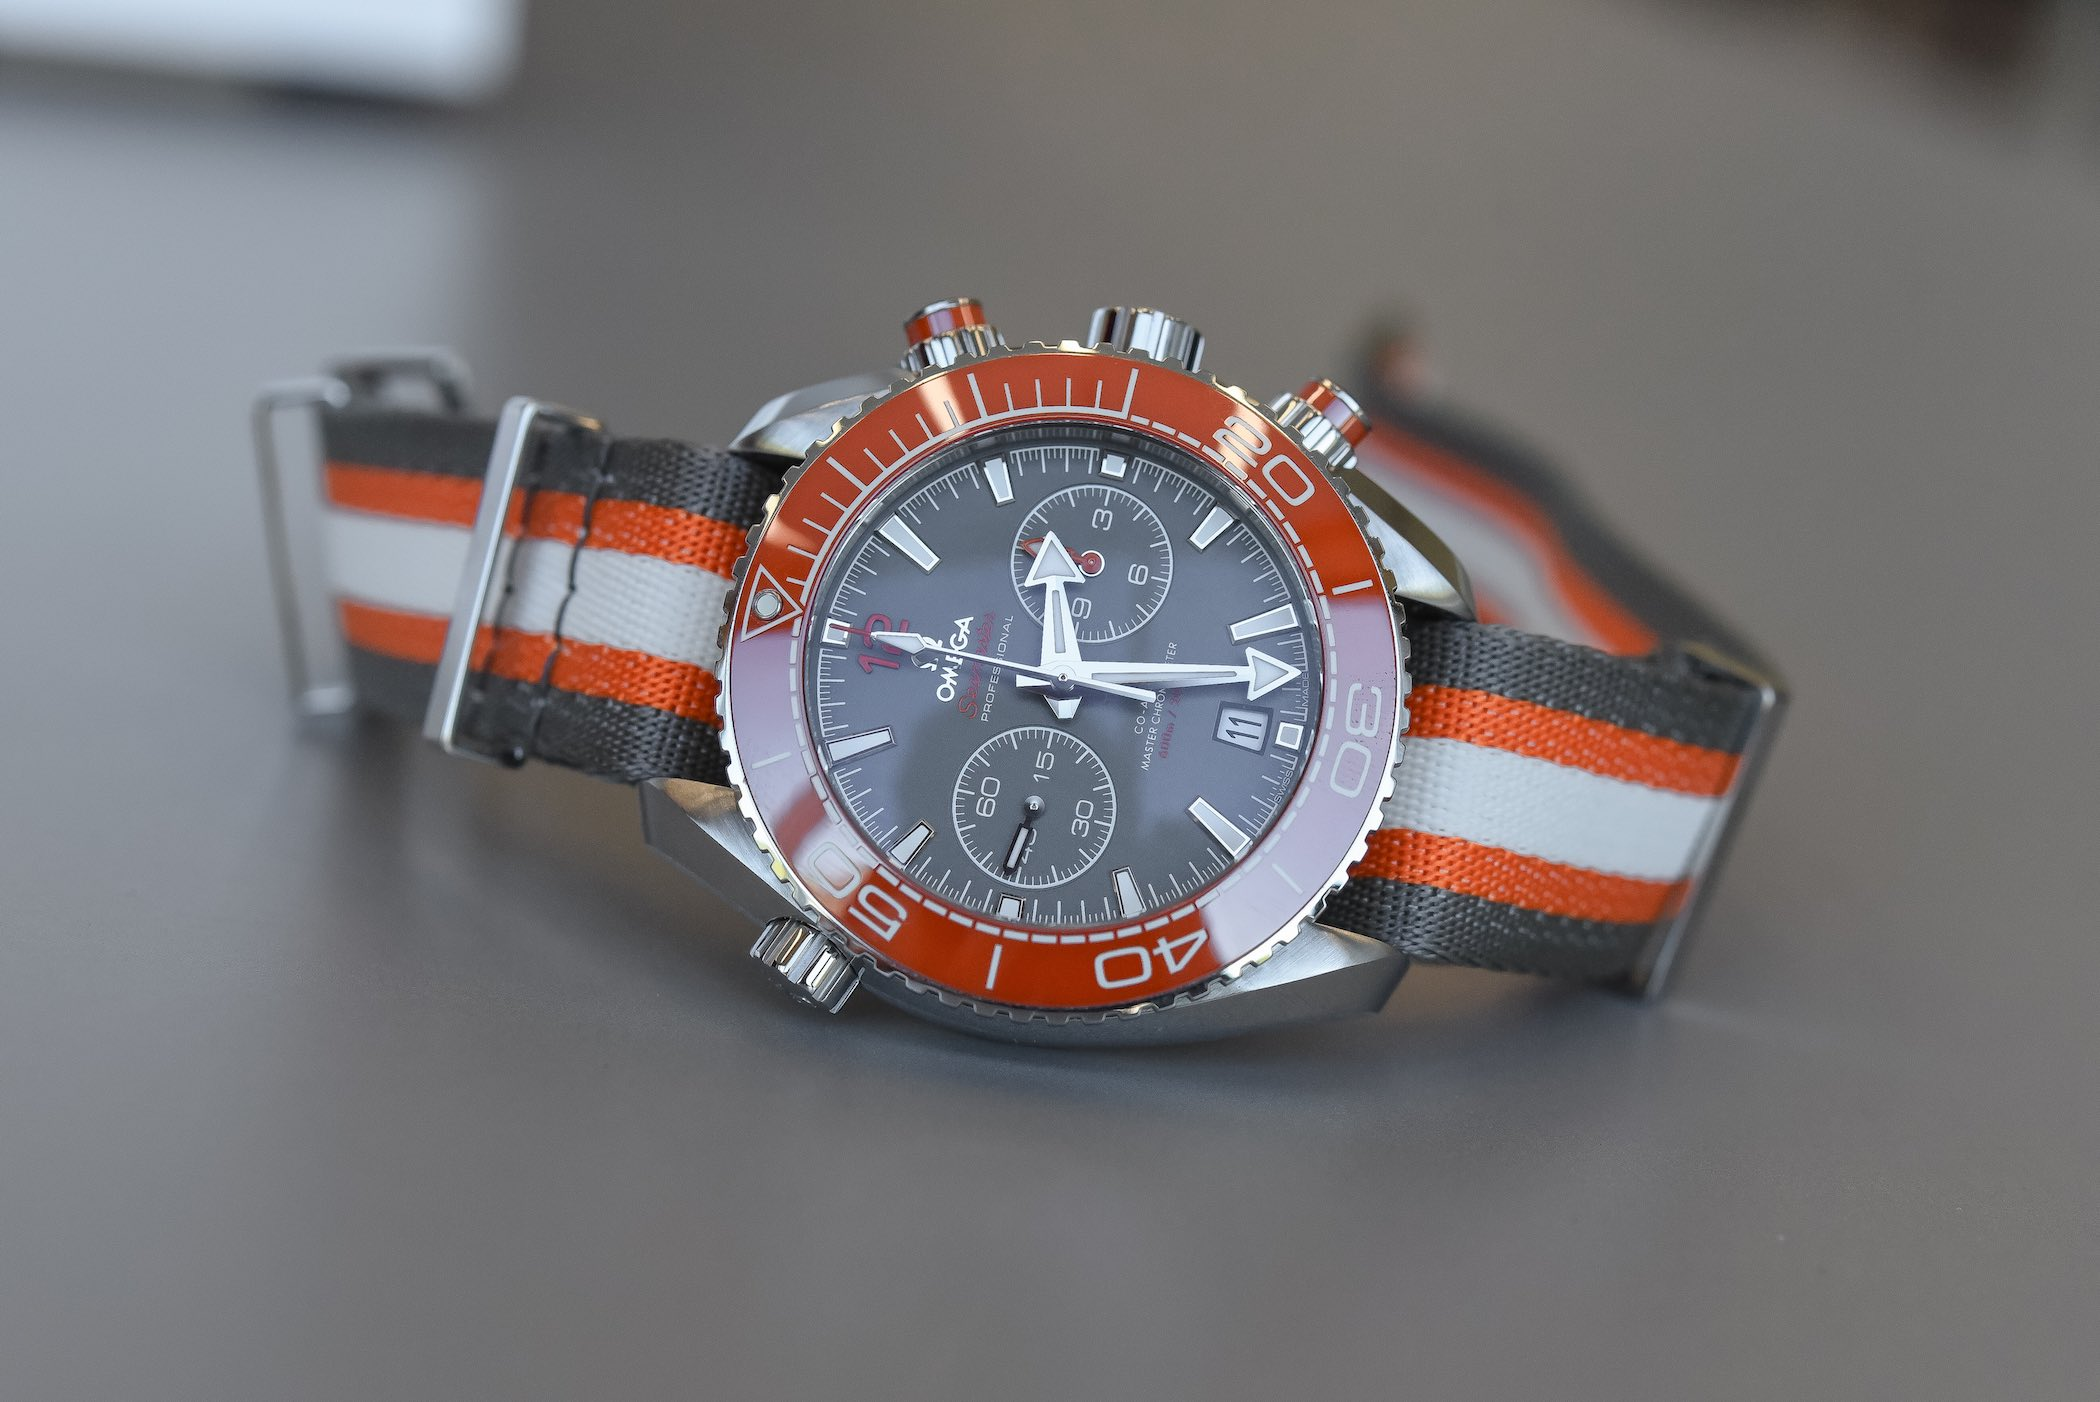 Omega Seamaster Planet Ocean 600m Chronograph Orange Ceramic Bezel and ceramised titanium dial - 215.32.46.51.99.001